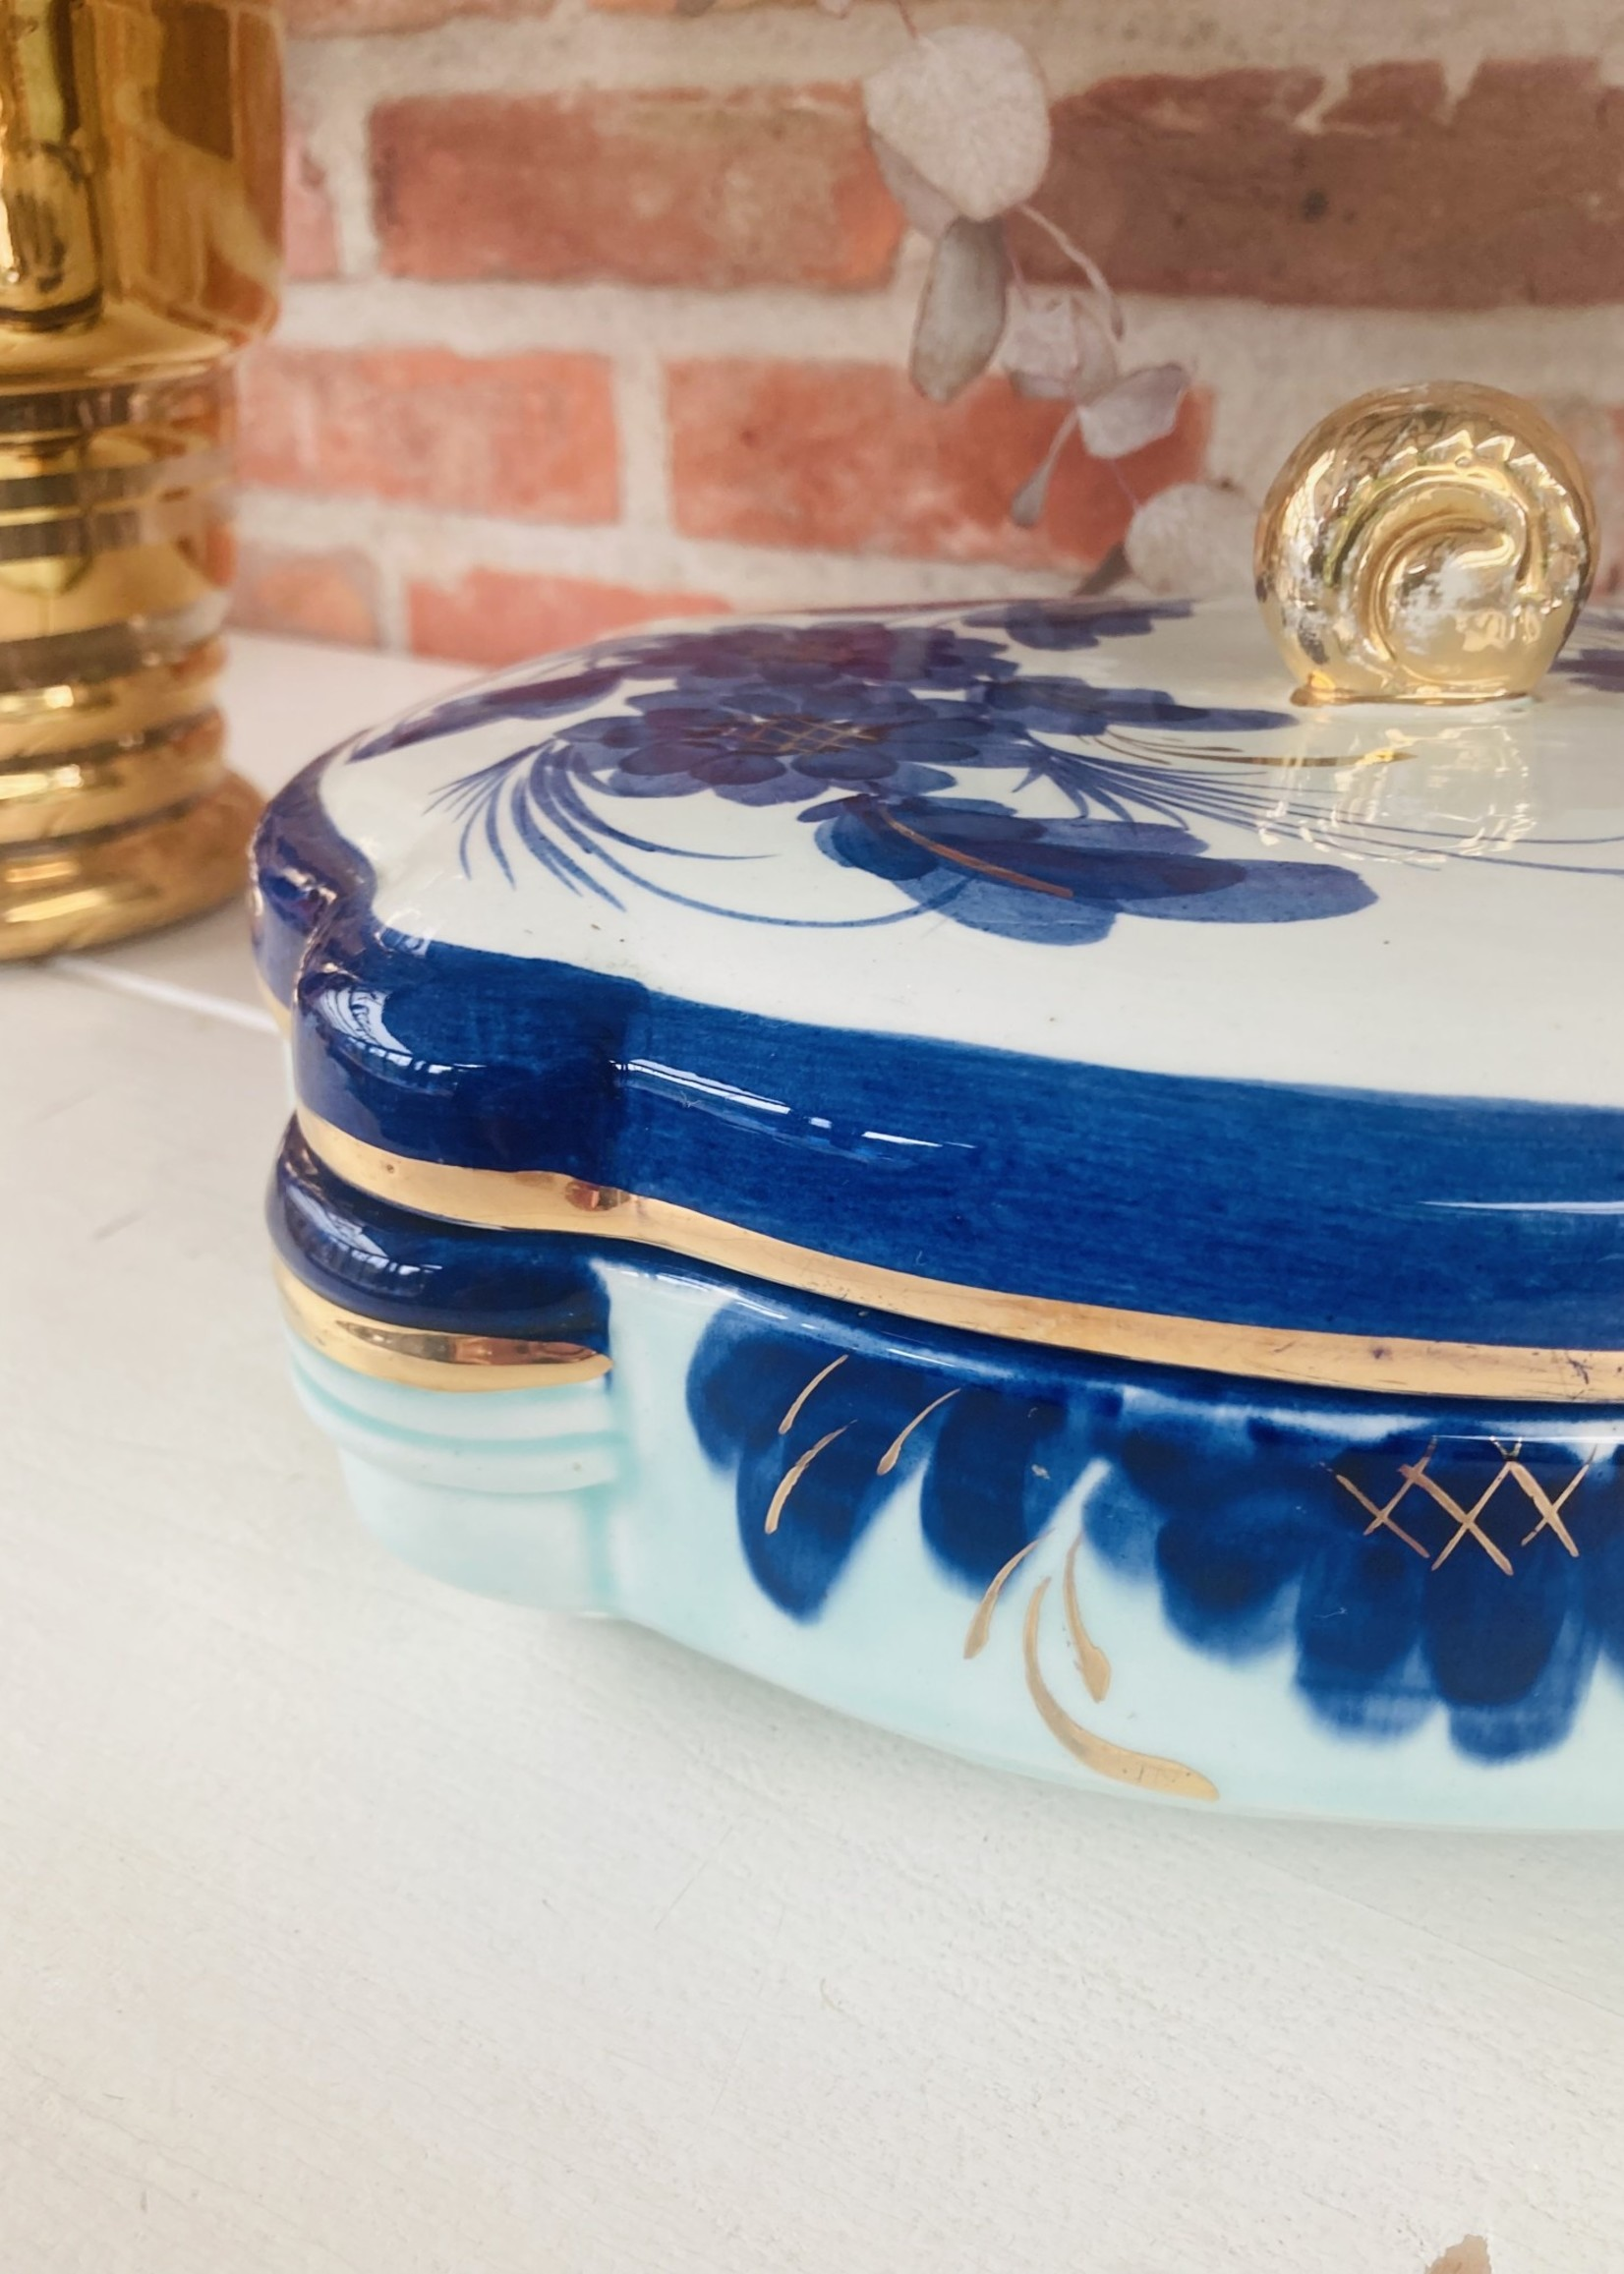 Bonbonnière or box in ceramic from Keralux Boch made in Belgium